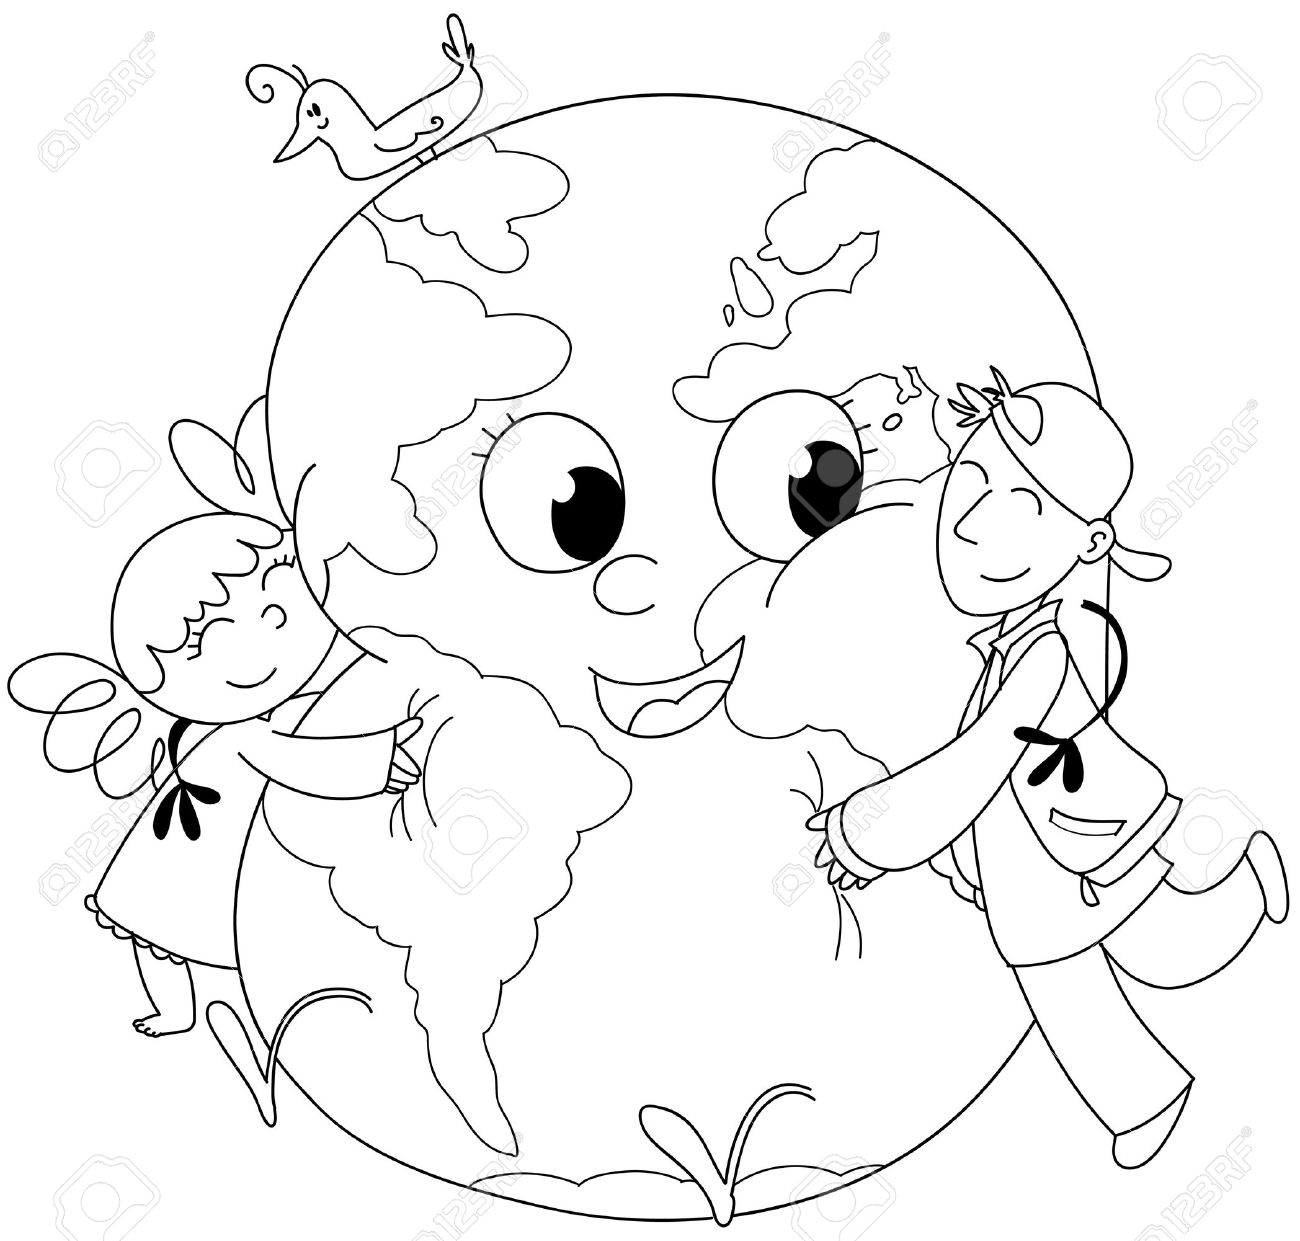 Coloring illustration  two kids embracing a happy earth Stock Photo - 13139994